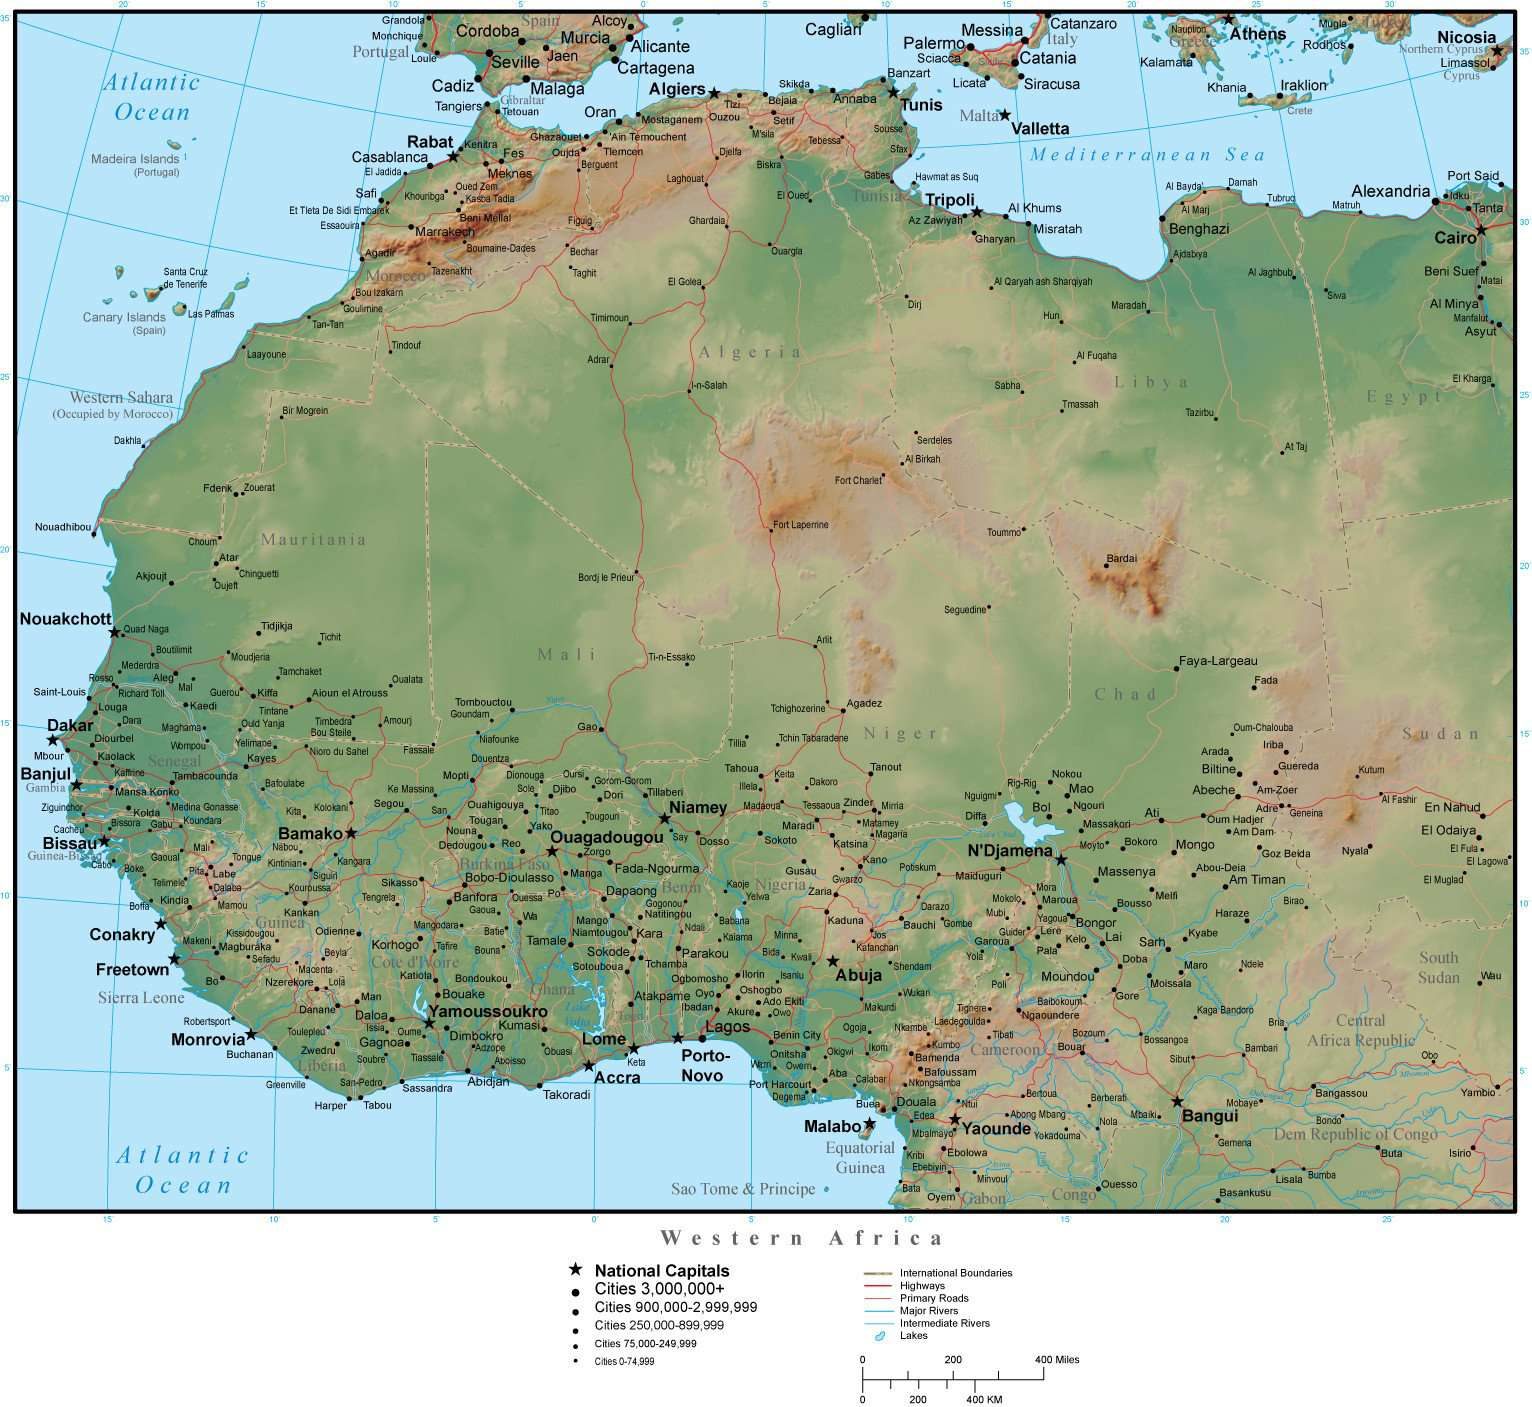 Western Africa Map Plus Terrain with Countries, Capitals, Cities, Roads, on map of ethiopia, map of benin, map of goa, map of martin luther, map of ghana, map of span, map of art, map of adobe, map of amer, map of asia, map of last, map of afr, map of amst, map of univ, map of soc, map of fren, map of history, map of nigeria, map of europe, map of namibia,